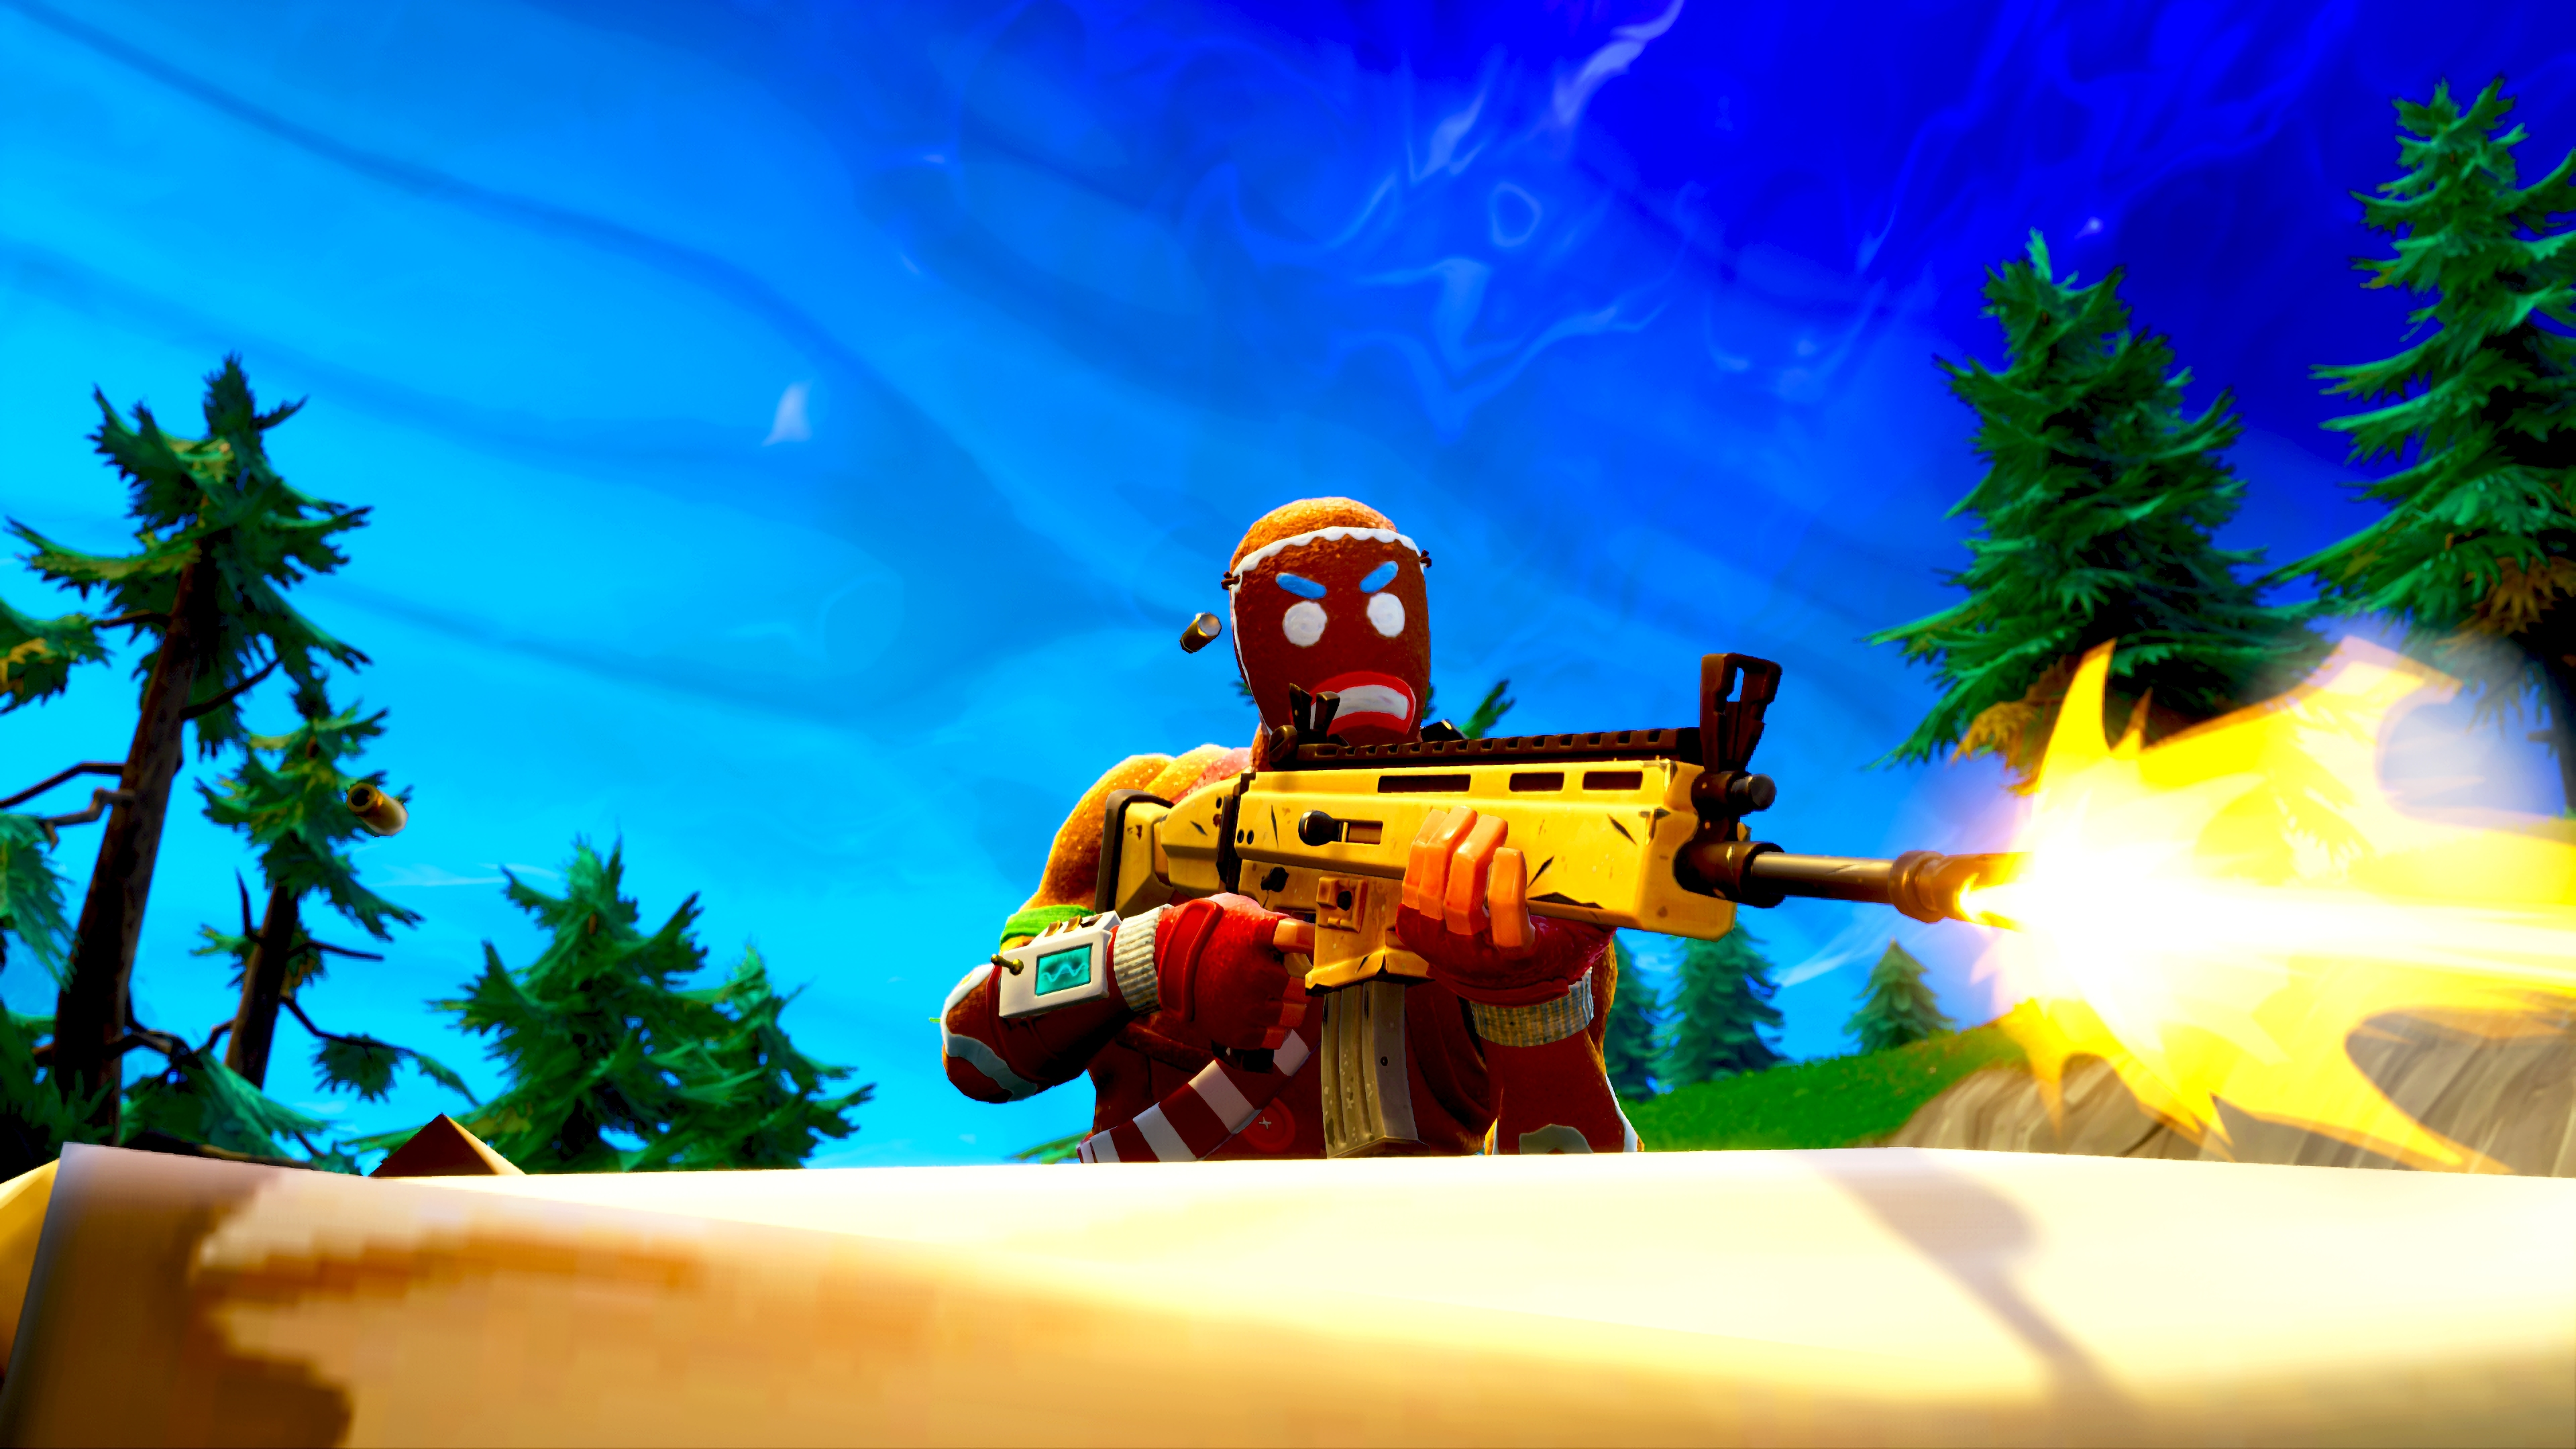 Fortnite background 132